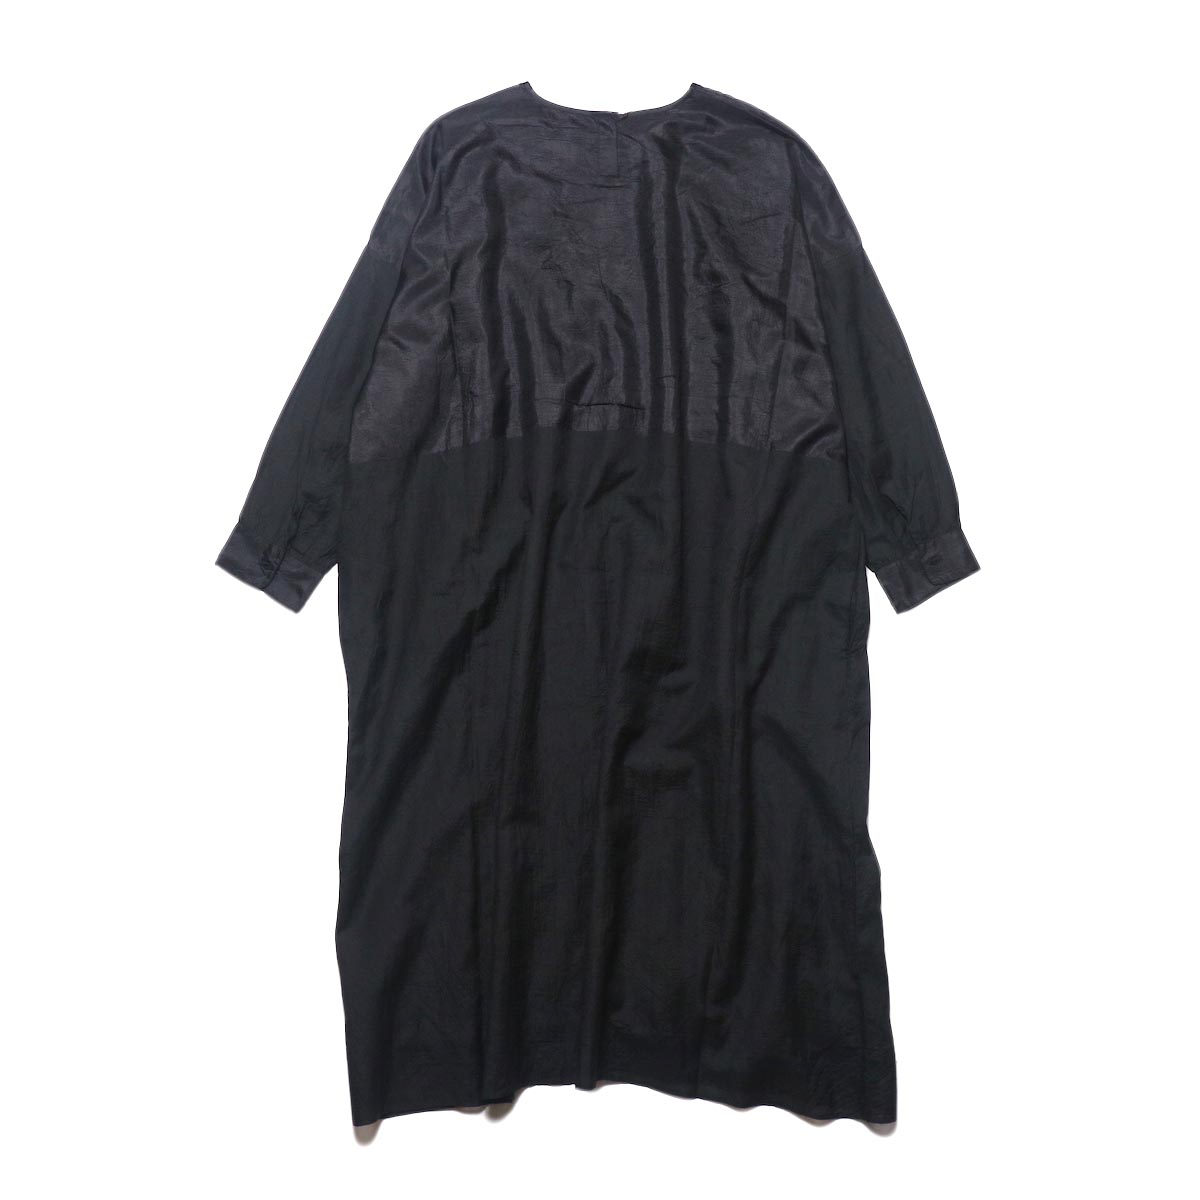 maison de soil / HAND WOVEN COTTON SILK × SILK PLAIN DROP SHOULDER DRESS (black) 背面